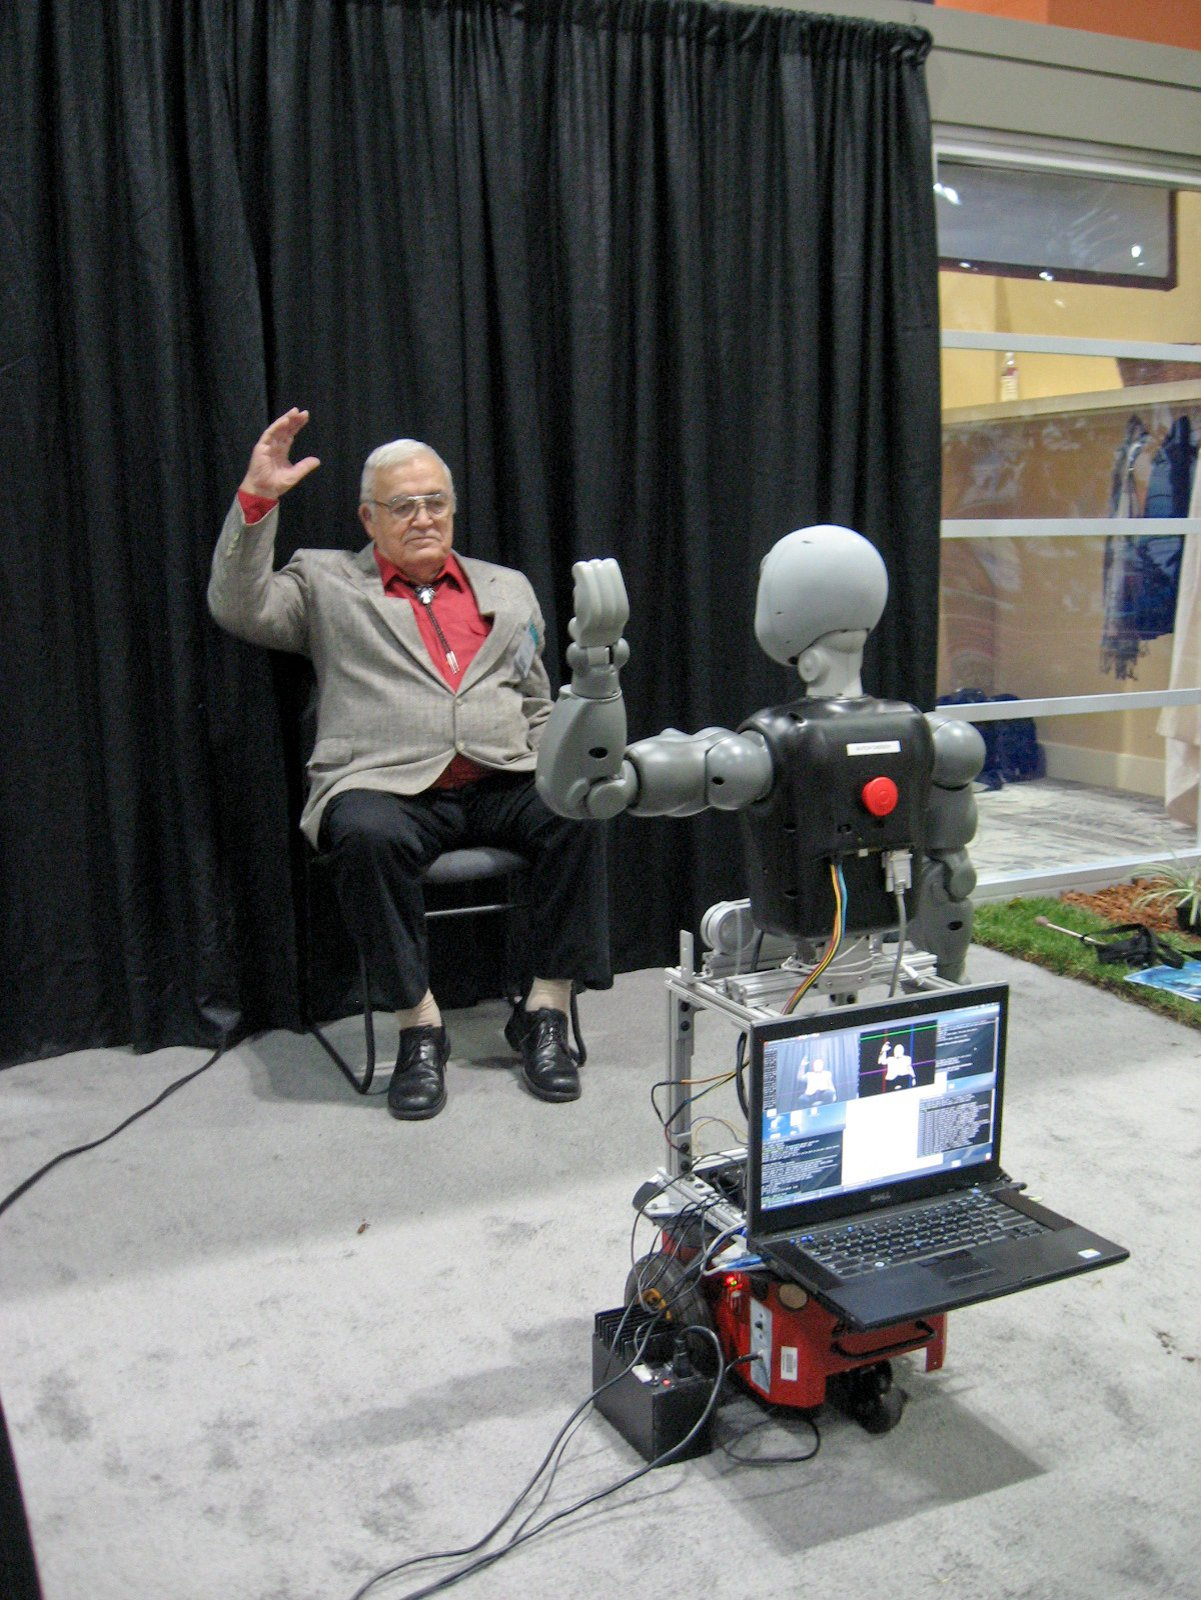 "One-on-one fitness instruction plays a significant role in motivating seniors to stay in shape. A talking robot dubbed Bandit encourages a person seated in front of it to engage in customized exercises, ranging from easy to challenging. Although still in the research and testing stages, the robot is capable of leading a person through a series of arm movements or imitating arm movements modeled by the person. It's one of six socially assistive robots, or SARs, being developed by the Interaction Lab of theViterbi School of Engineering at the University of Southern California. For more information, see Interaction Lab.  Search ""창원출장샵(TALK:za31)¤영양출장아가씨"" from The Idea House: Senior Living"